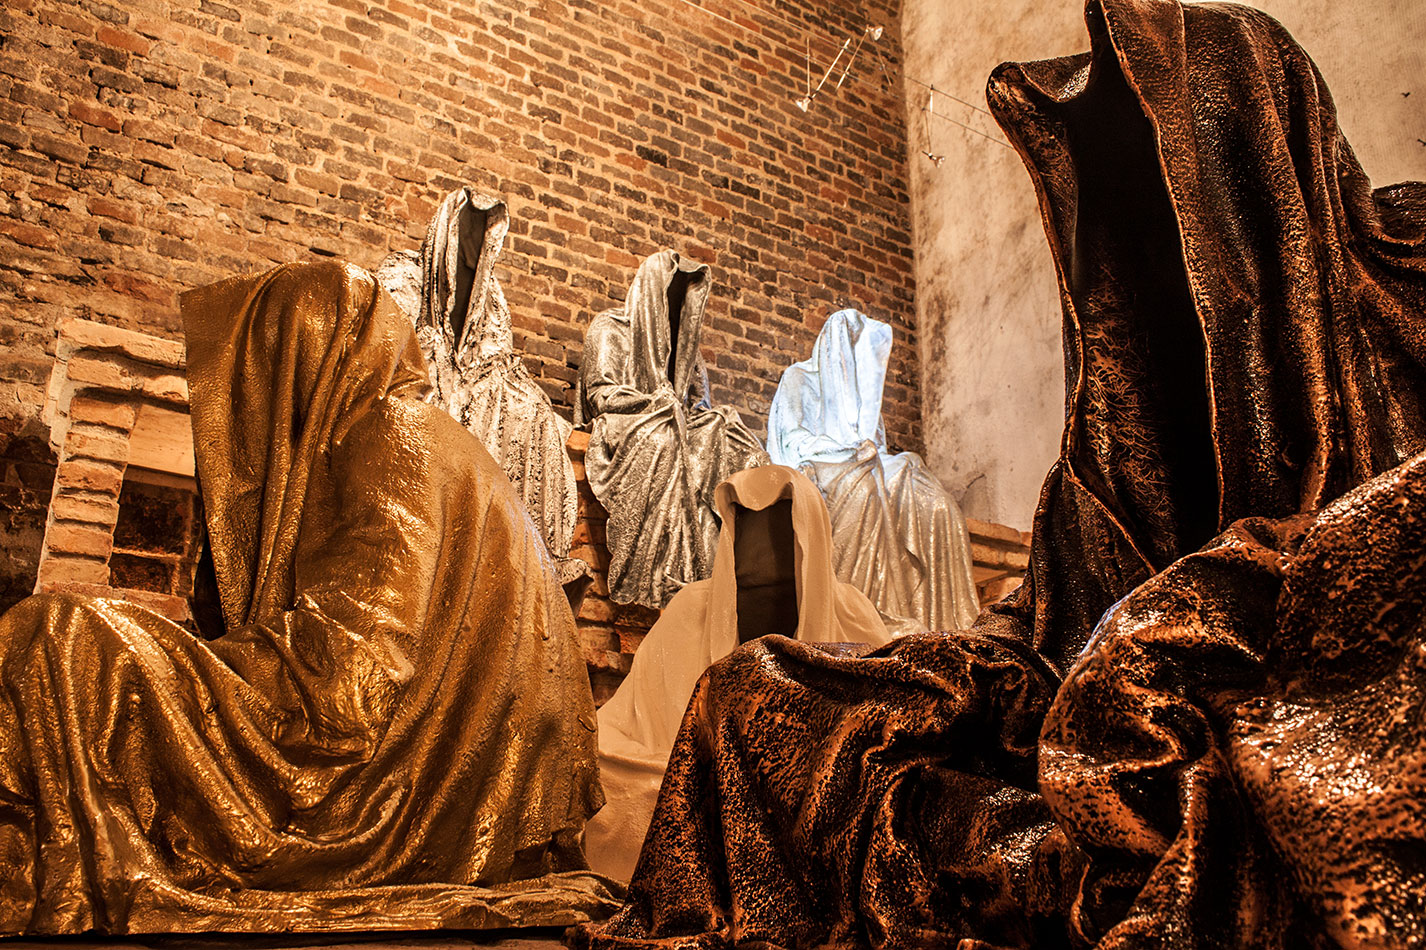 wine-cellar-galerie-artdealer--freller-guardians-of-time-manfred-kili-kielnhofer-contemporary-art-arts-light-design-sculpture-antique-show-statue-7907